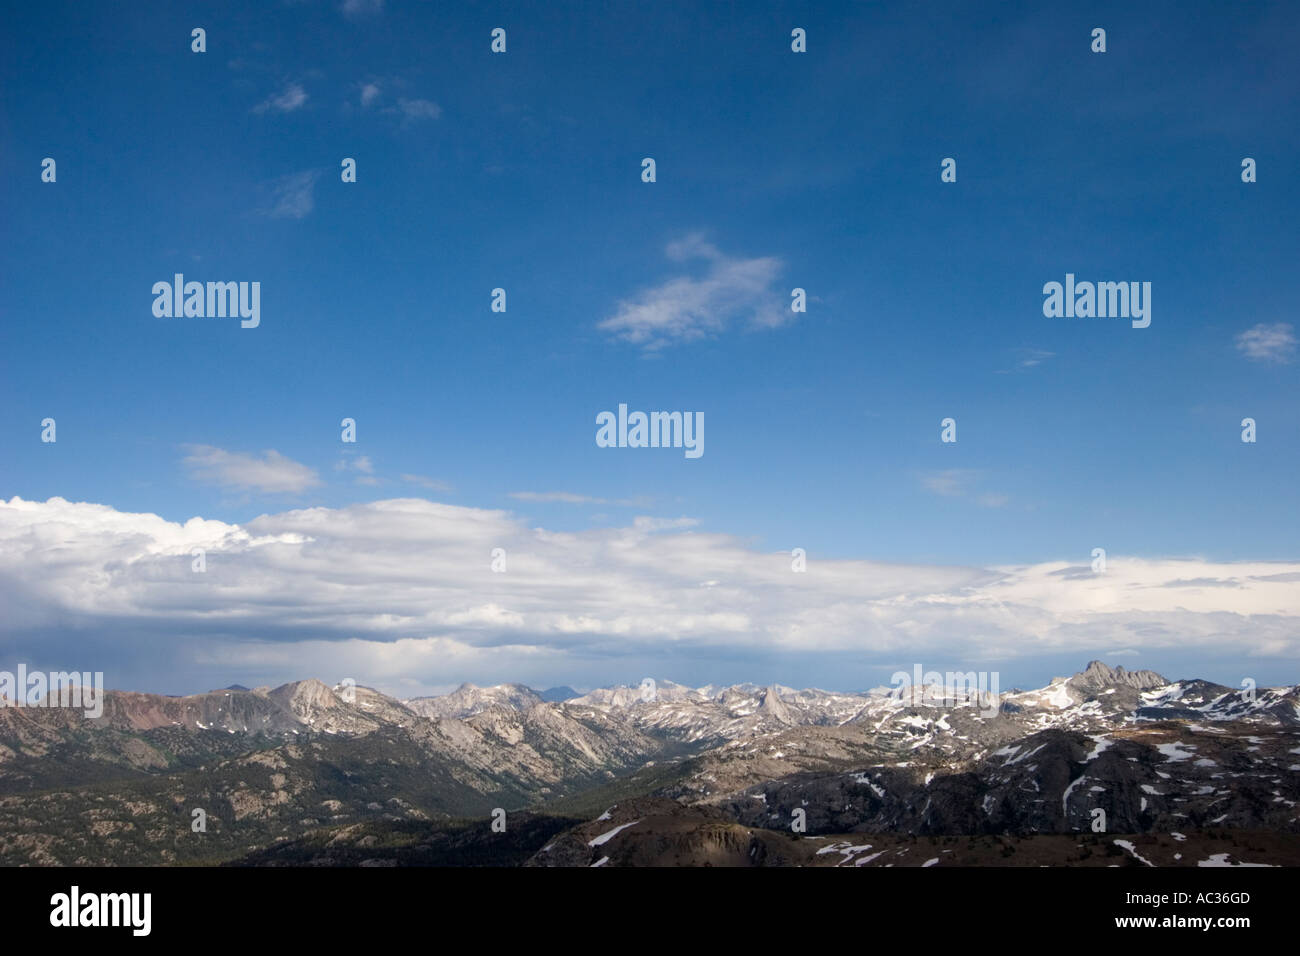 View from the summit of Big Sam Emigrant Wilderness Area CaliforniaStock Photo